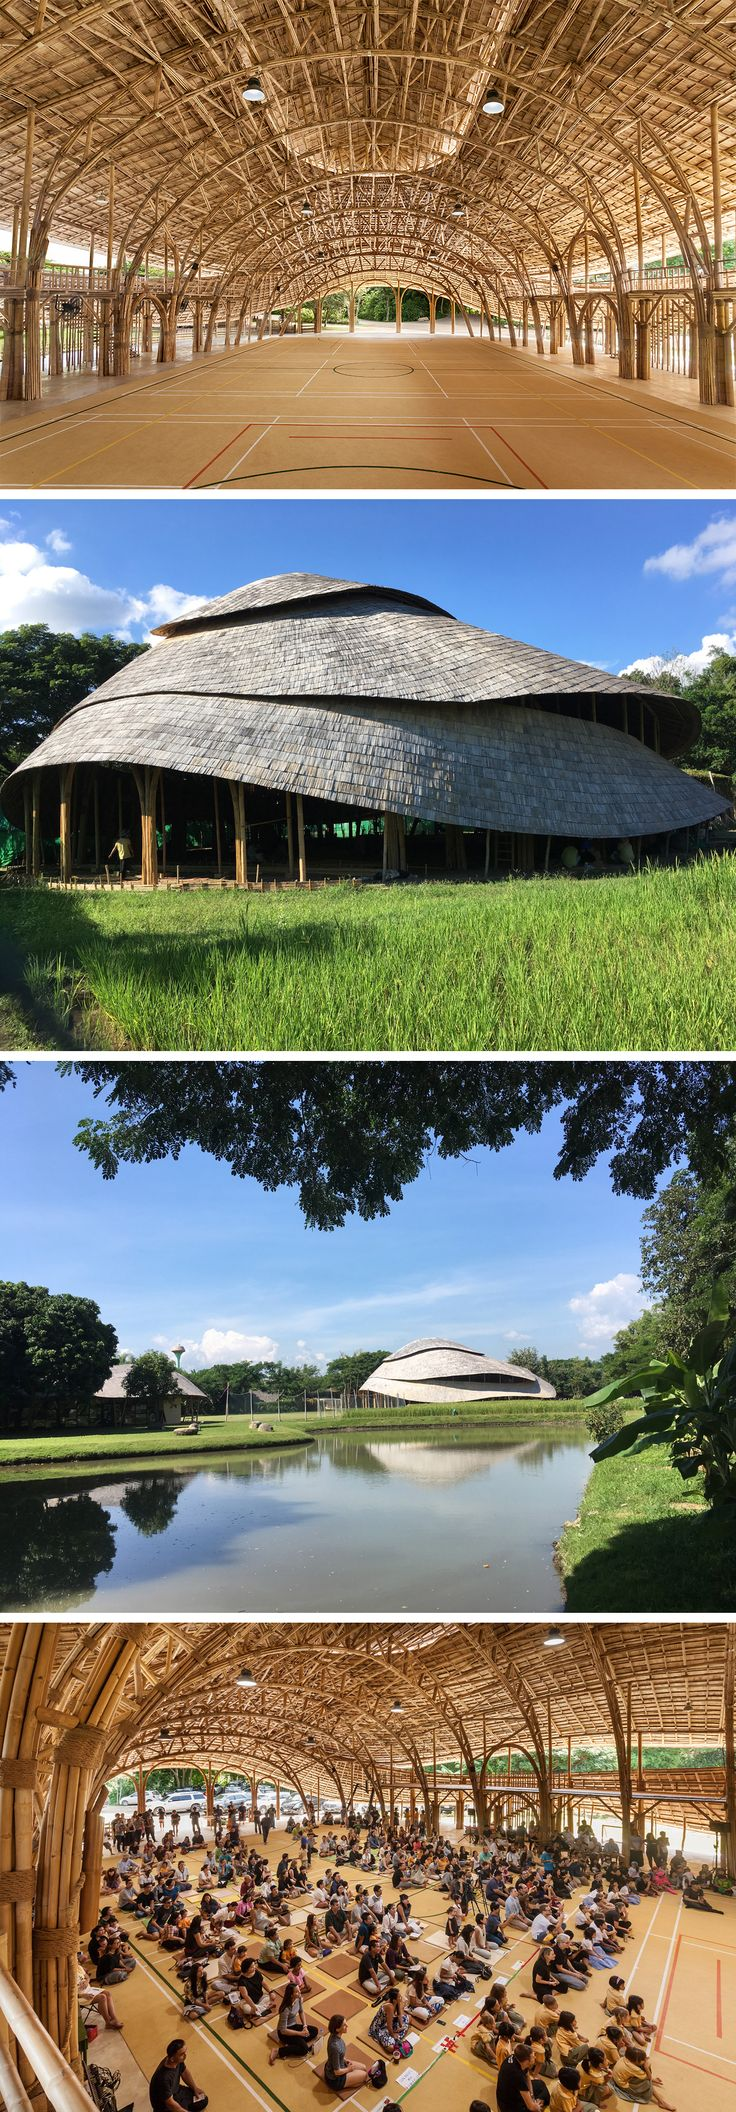 A Bamboo Recreation Facility Inspired by the Lotus Blooms in Thailand